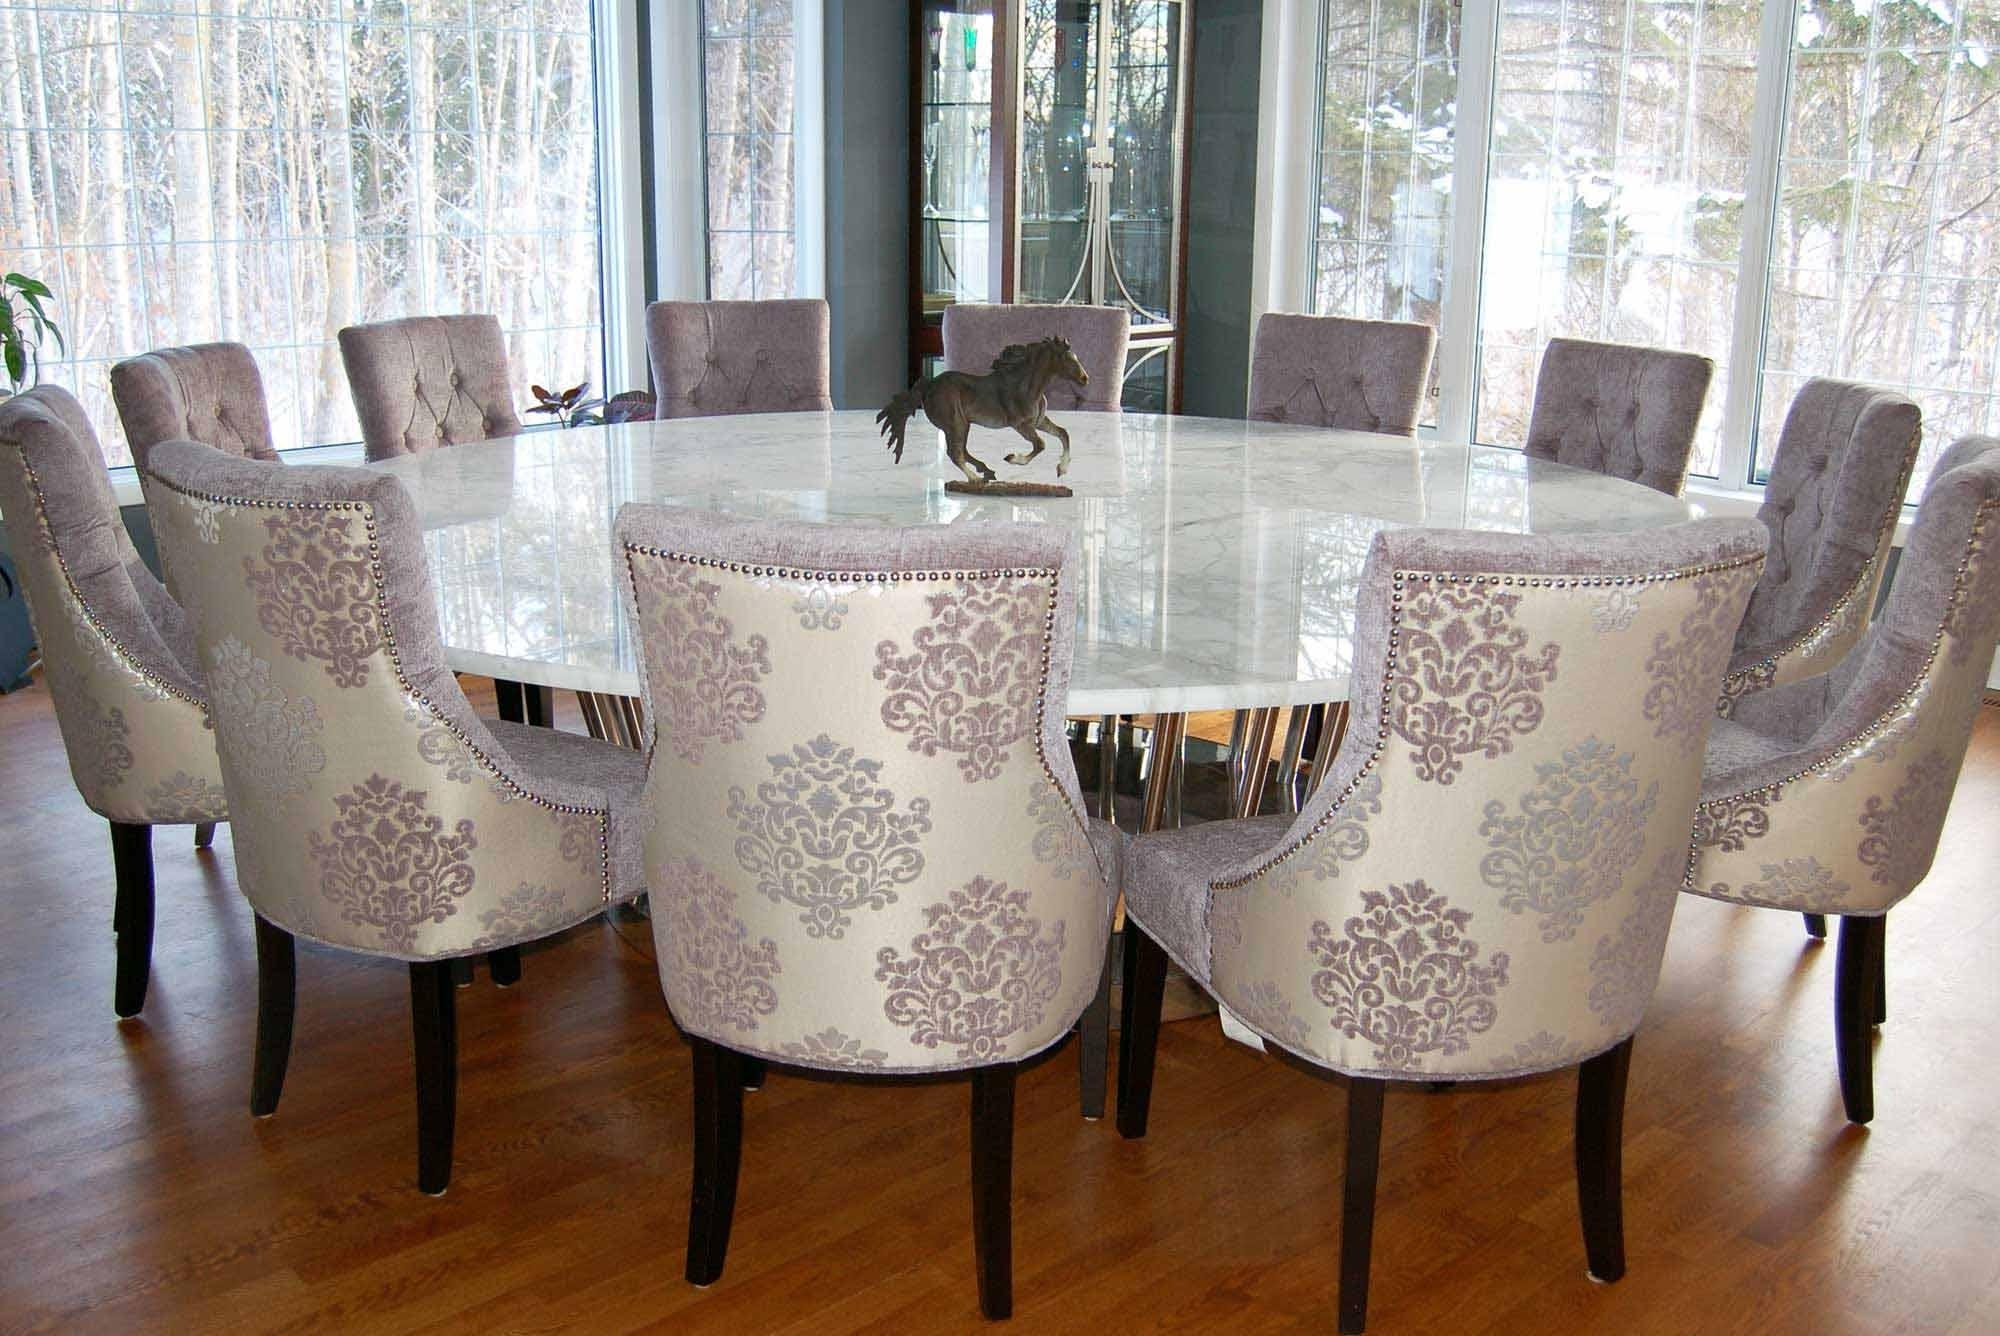 12 Seater Round Dining Table And Chairs – Round Table Ideas Pertaining To Most Up To Date Round 6 Person Dining Tables (View 2 of 25)